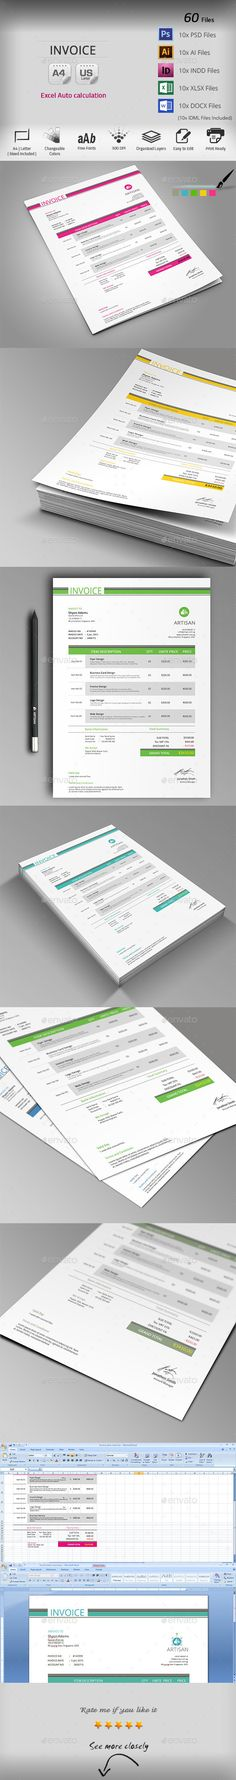 Such a cute invoice template! FREE psd, about to make a form PDF - invoice creation